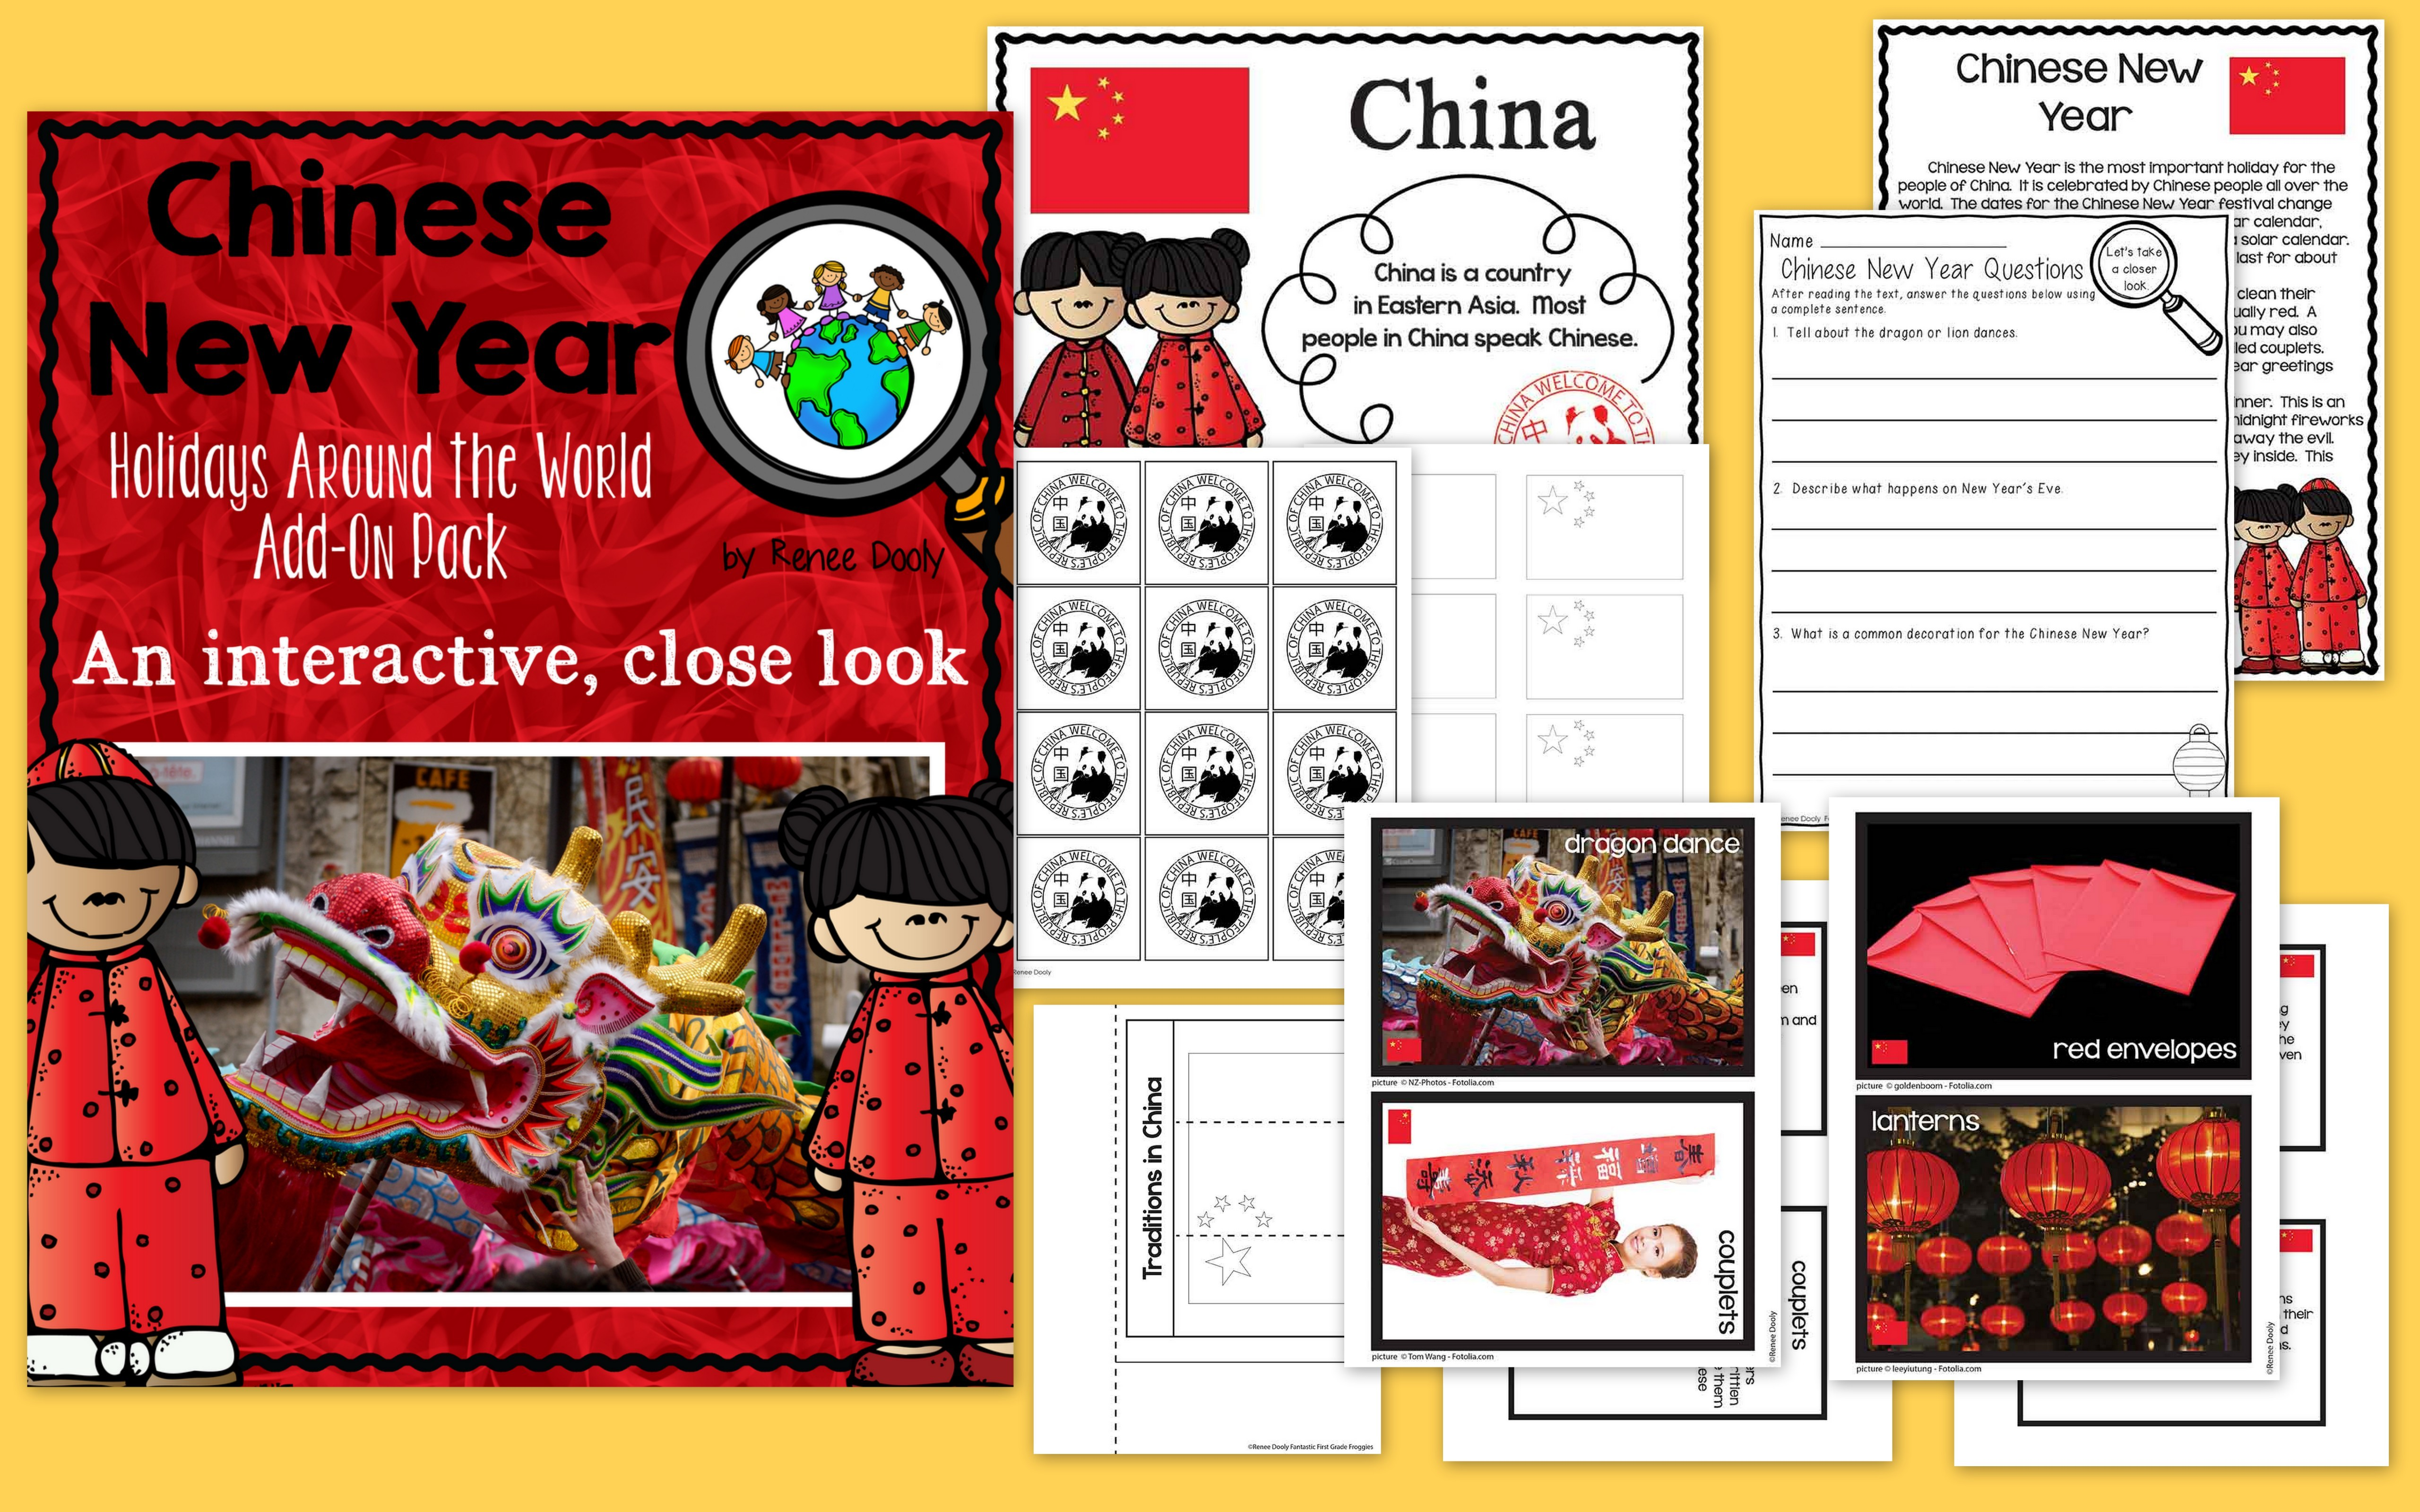 Chinese New Year Collage